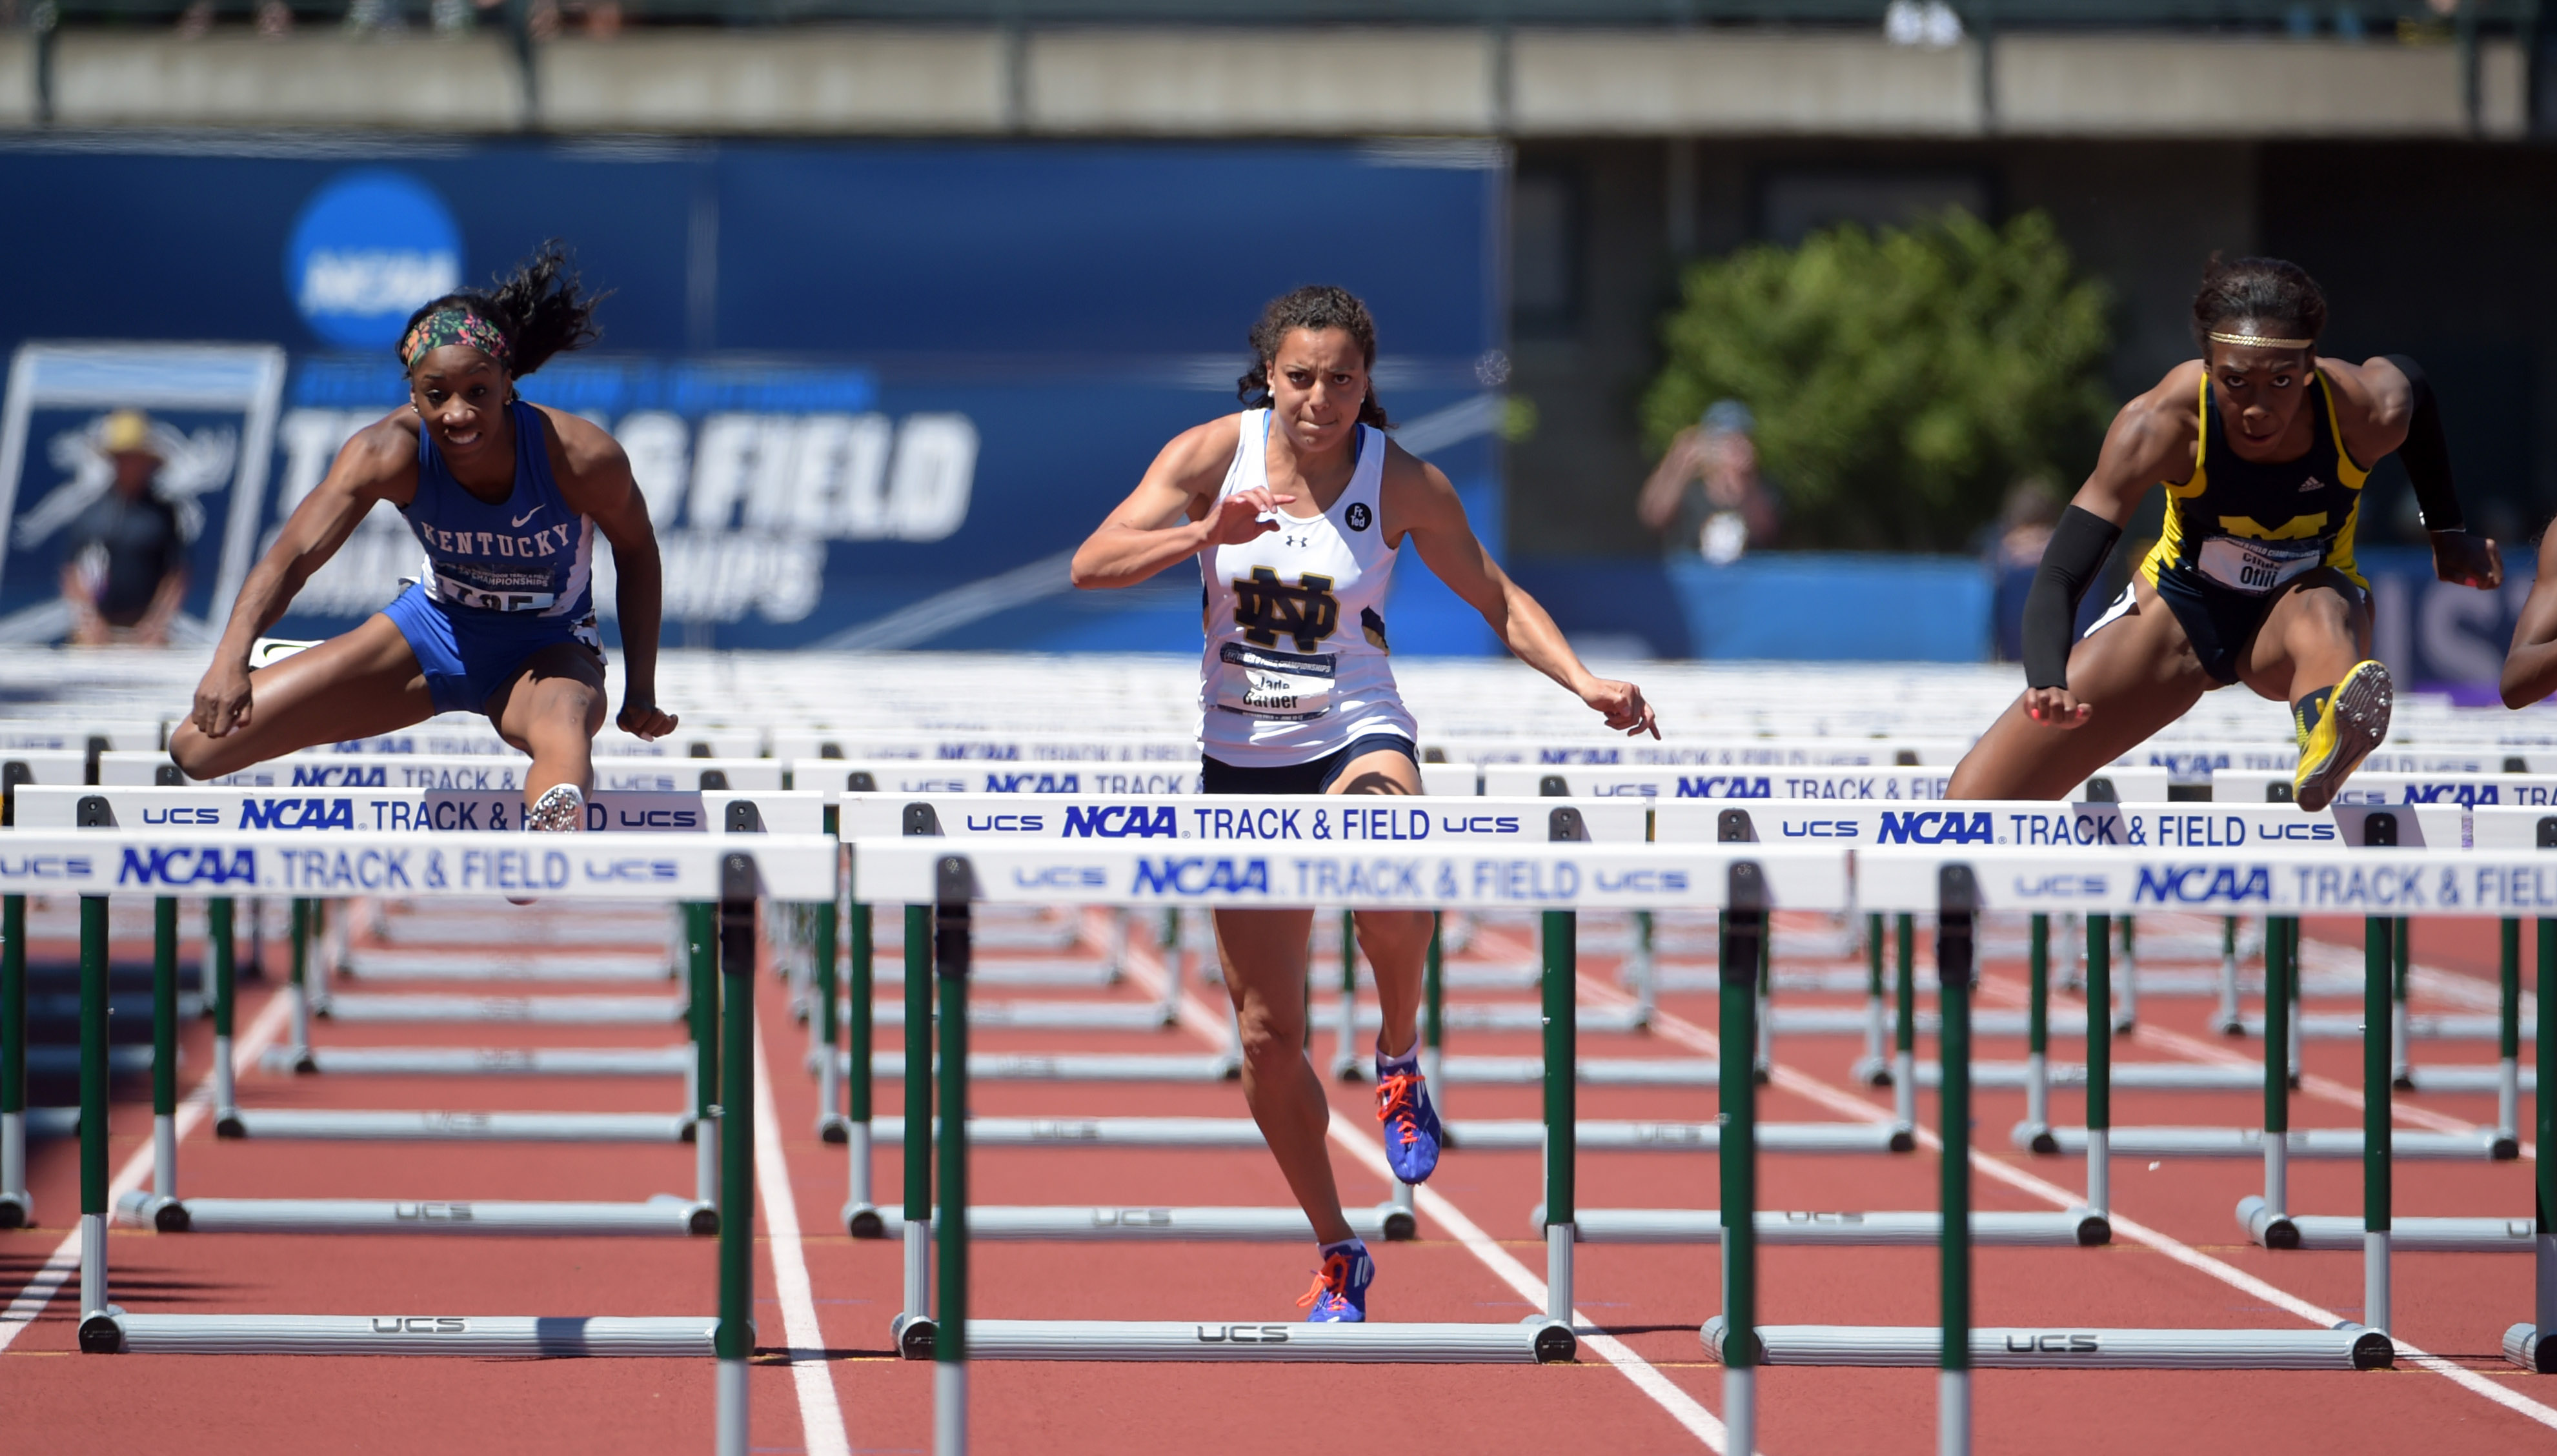 8672174-track-and-field-ncaa-championships